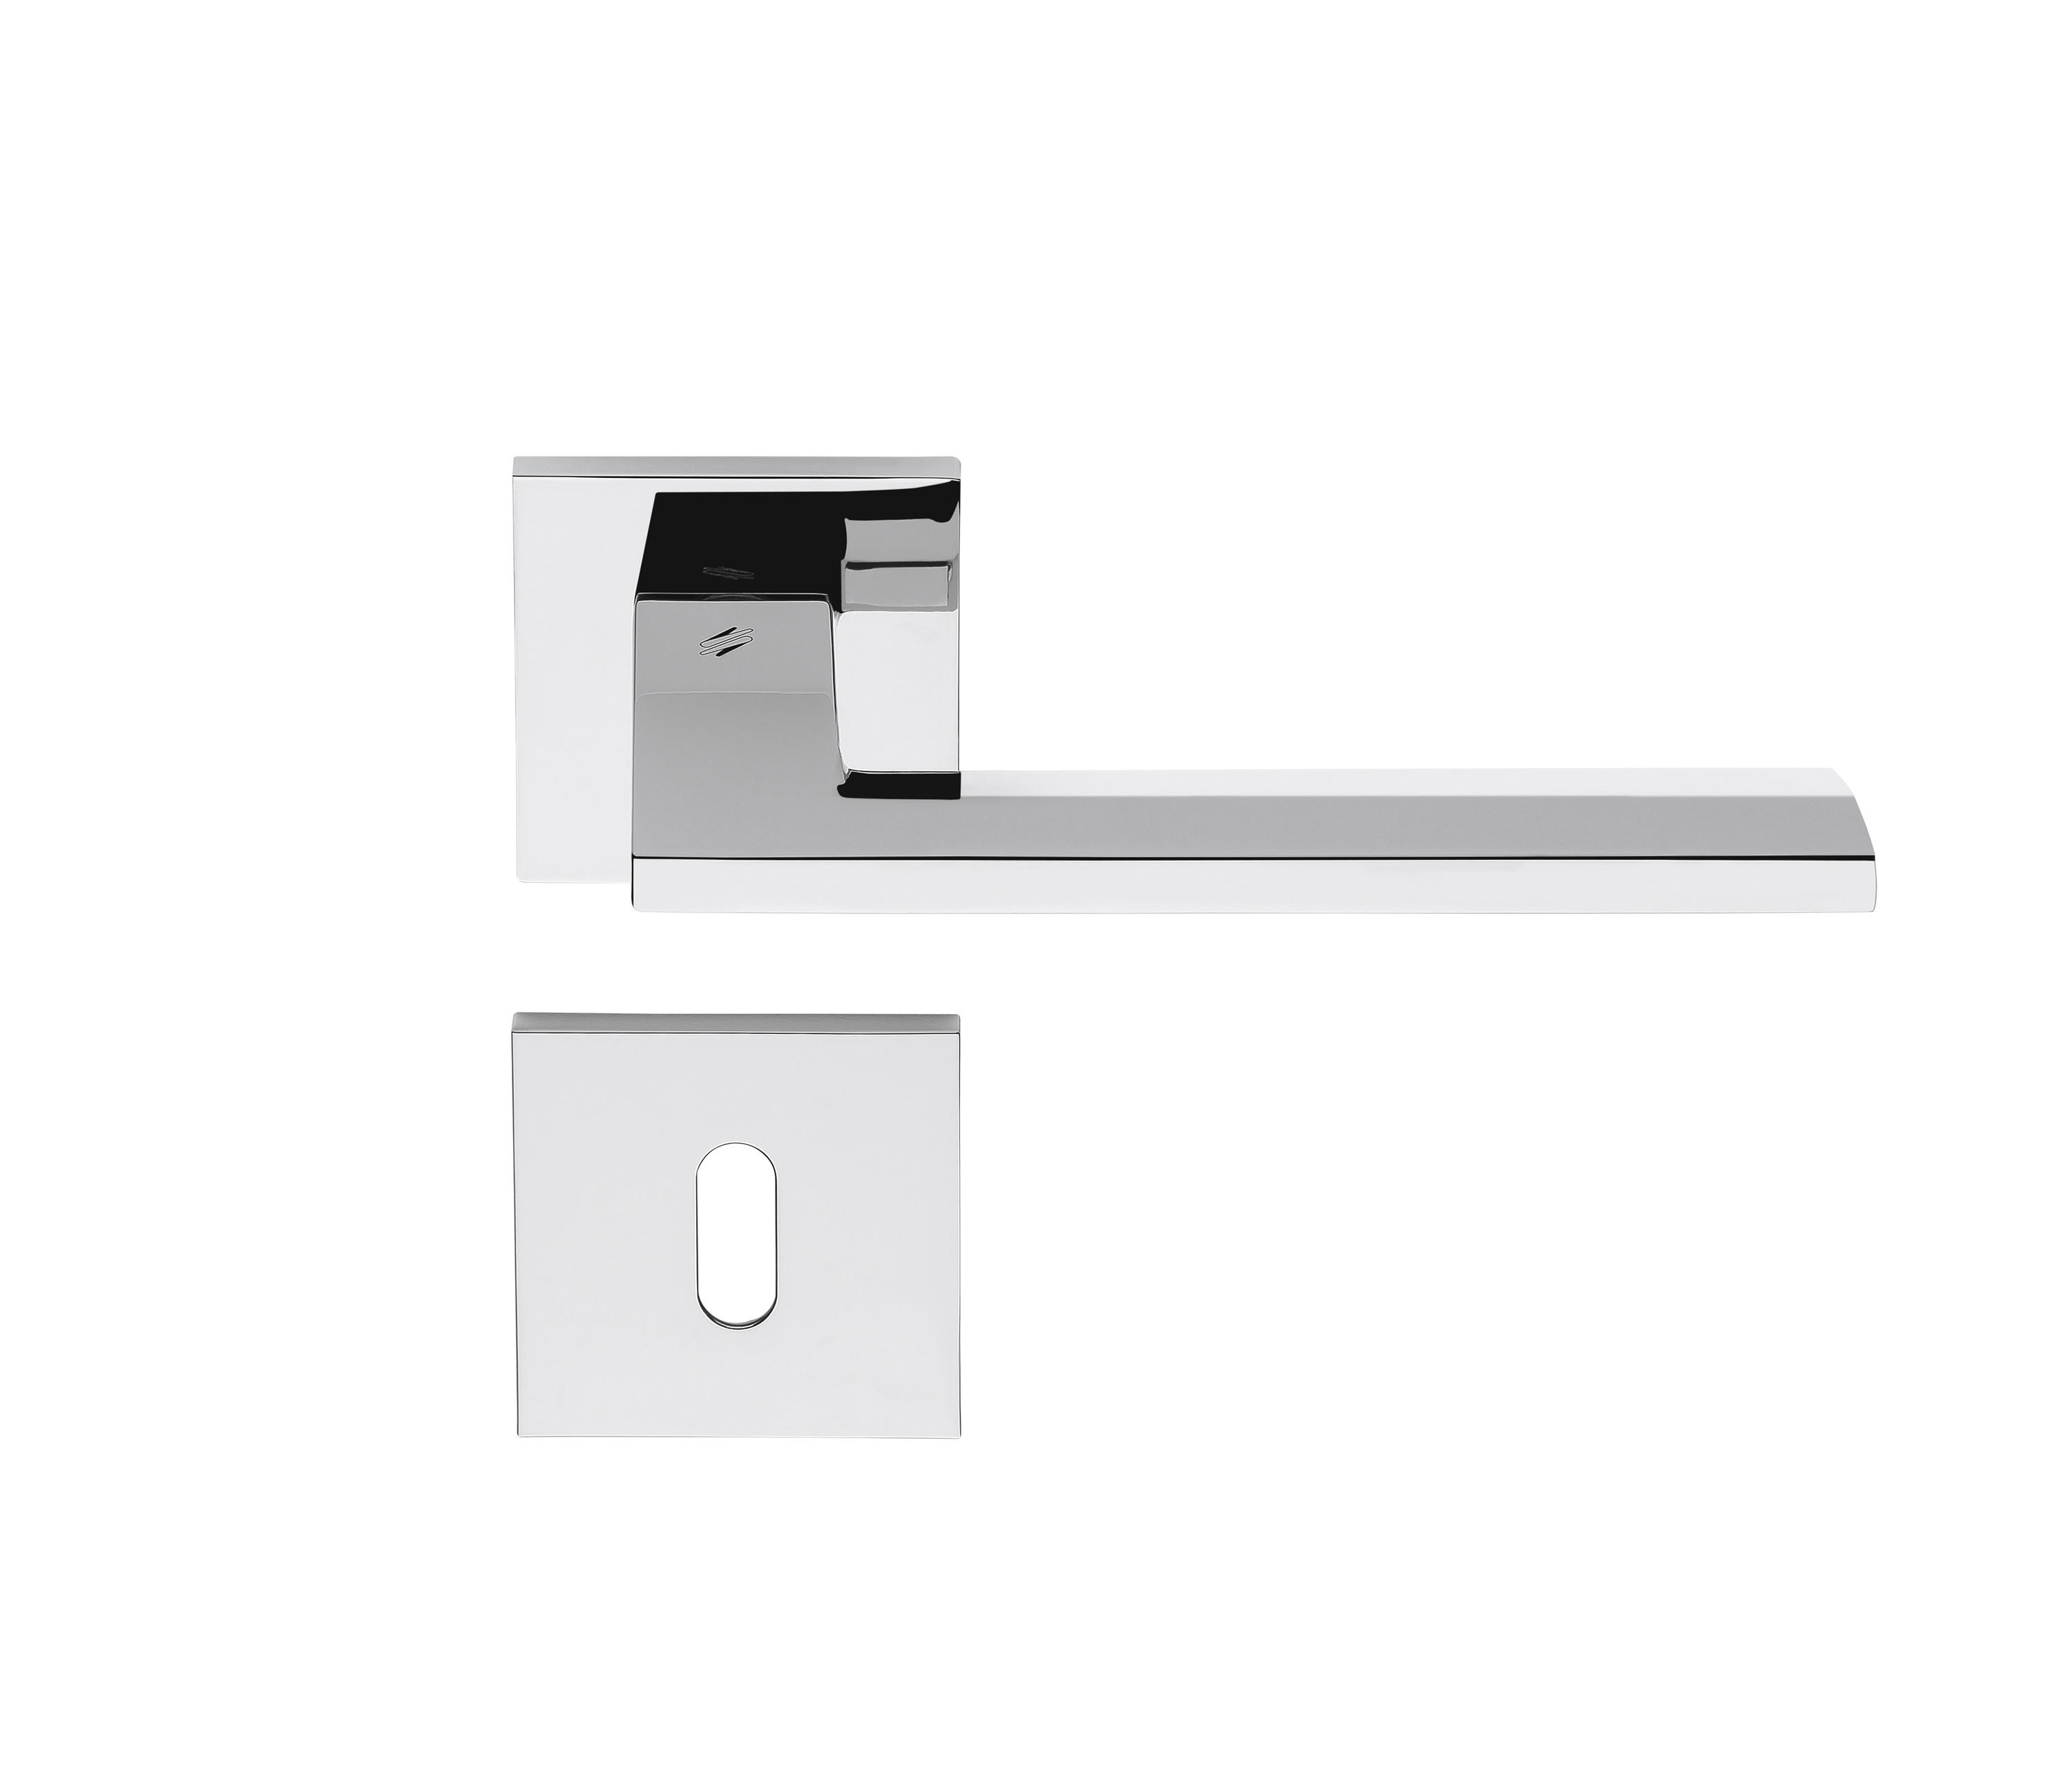 Electra Design electra handle sets from colombo design architonic